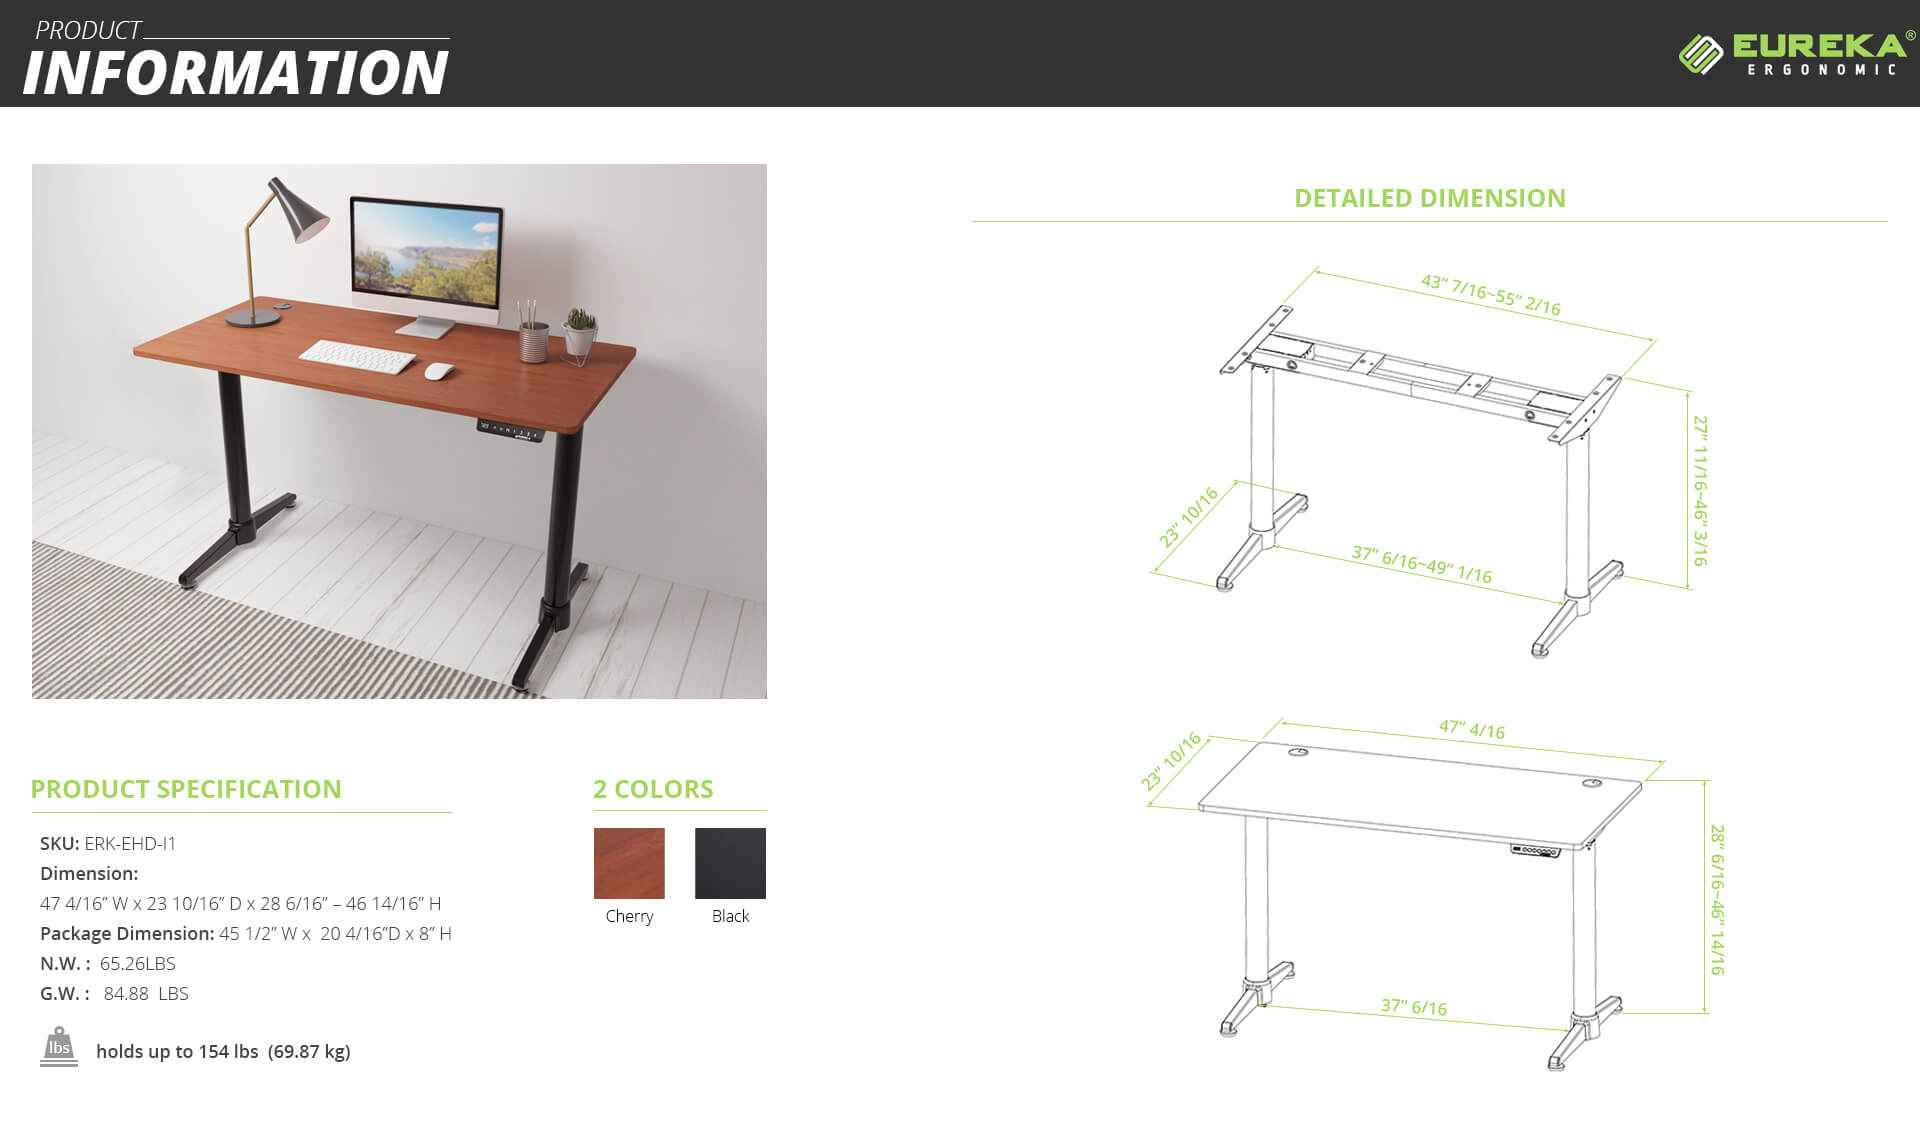 Eureka Ergonomic® Electric Height Adjustable Desk - Black